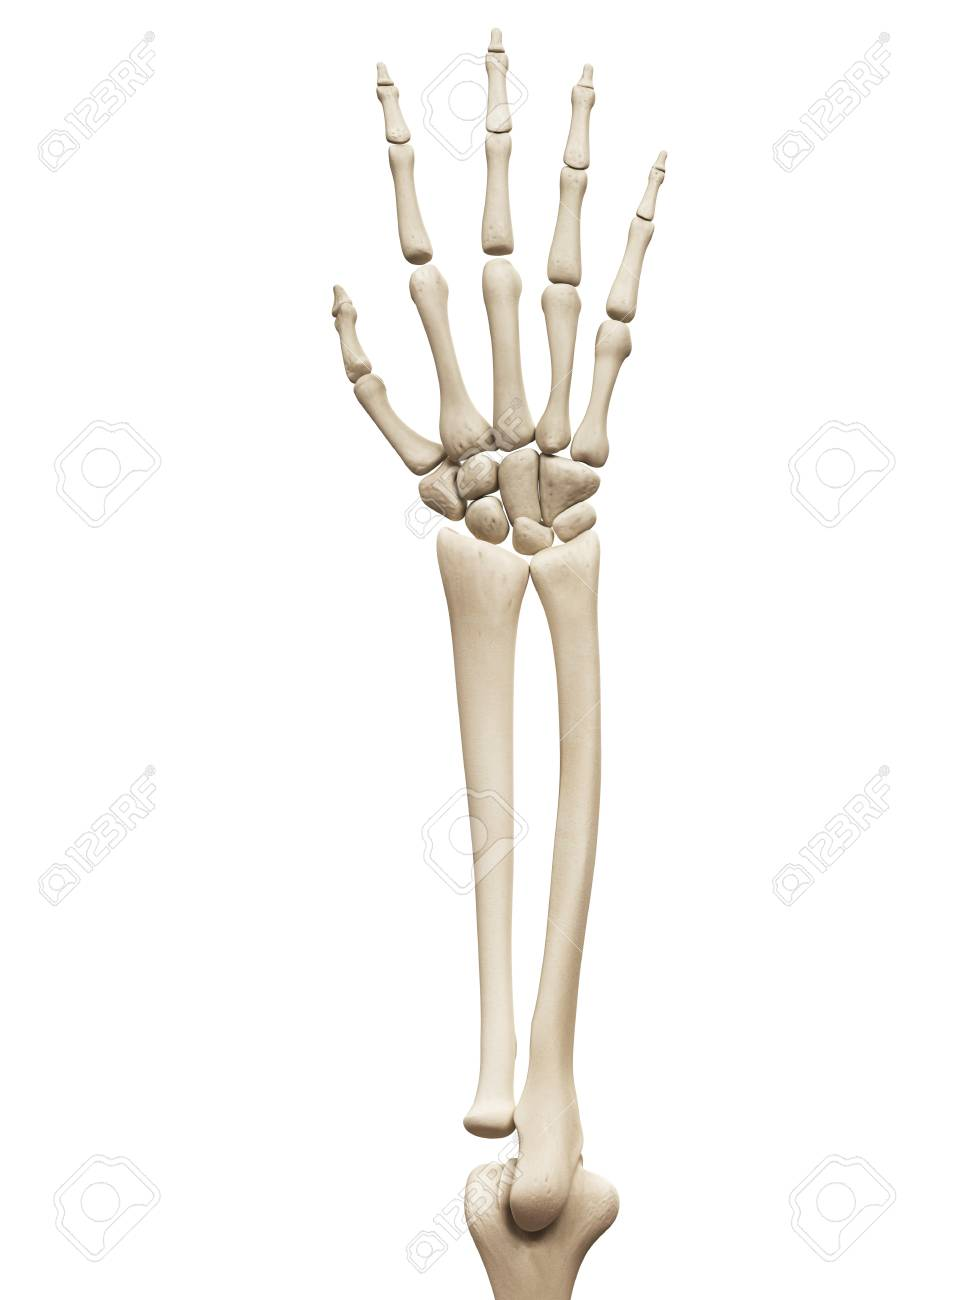 Arm And Hand Bones, Illustration Stock Photo, Picture And Royalty ...